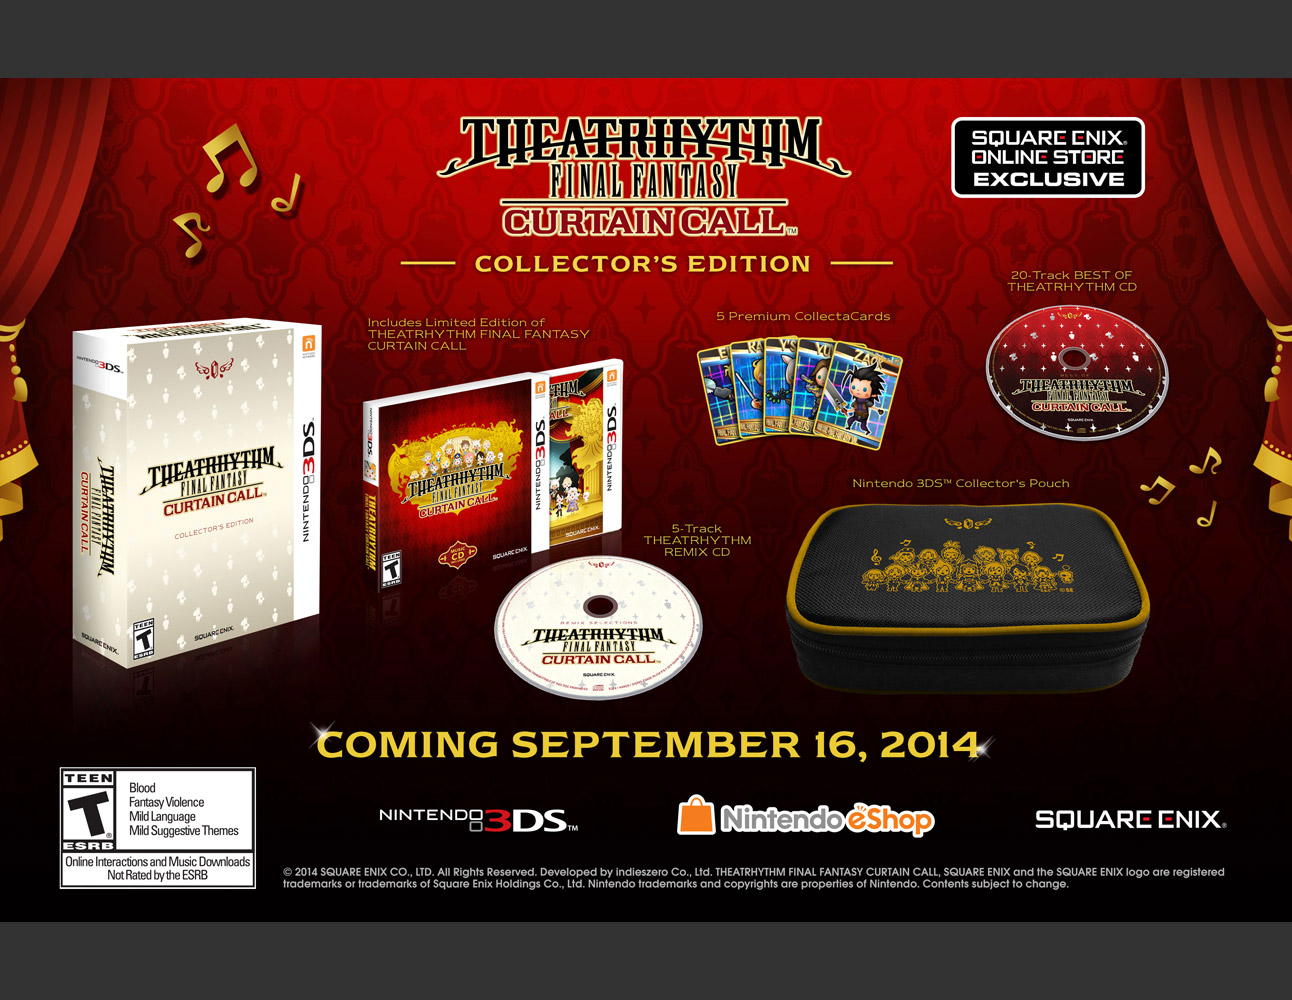 THEATRHYTHM FINAL FANTASY CURTAIN CALL COLLECTOR'S EDITION [3DS]